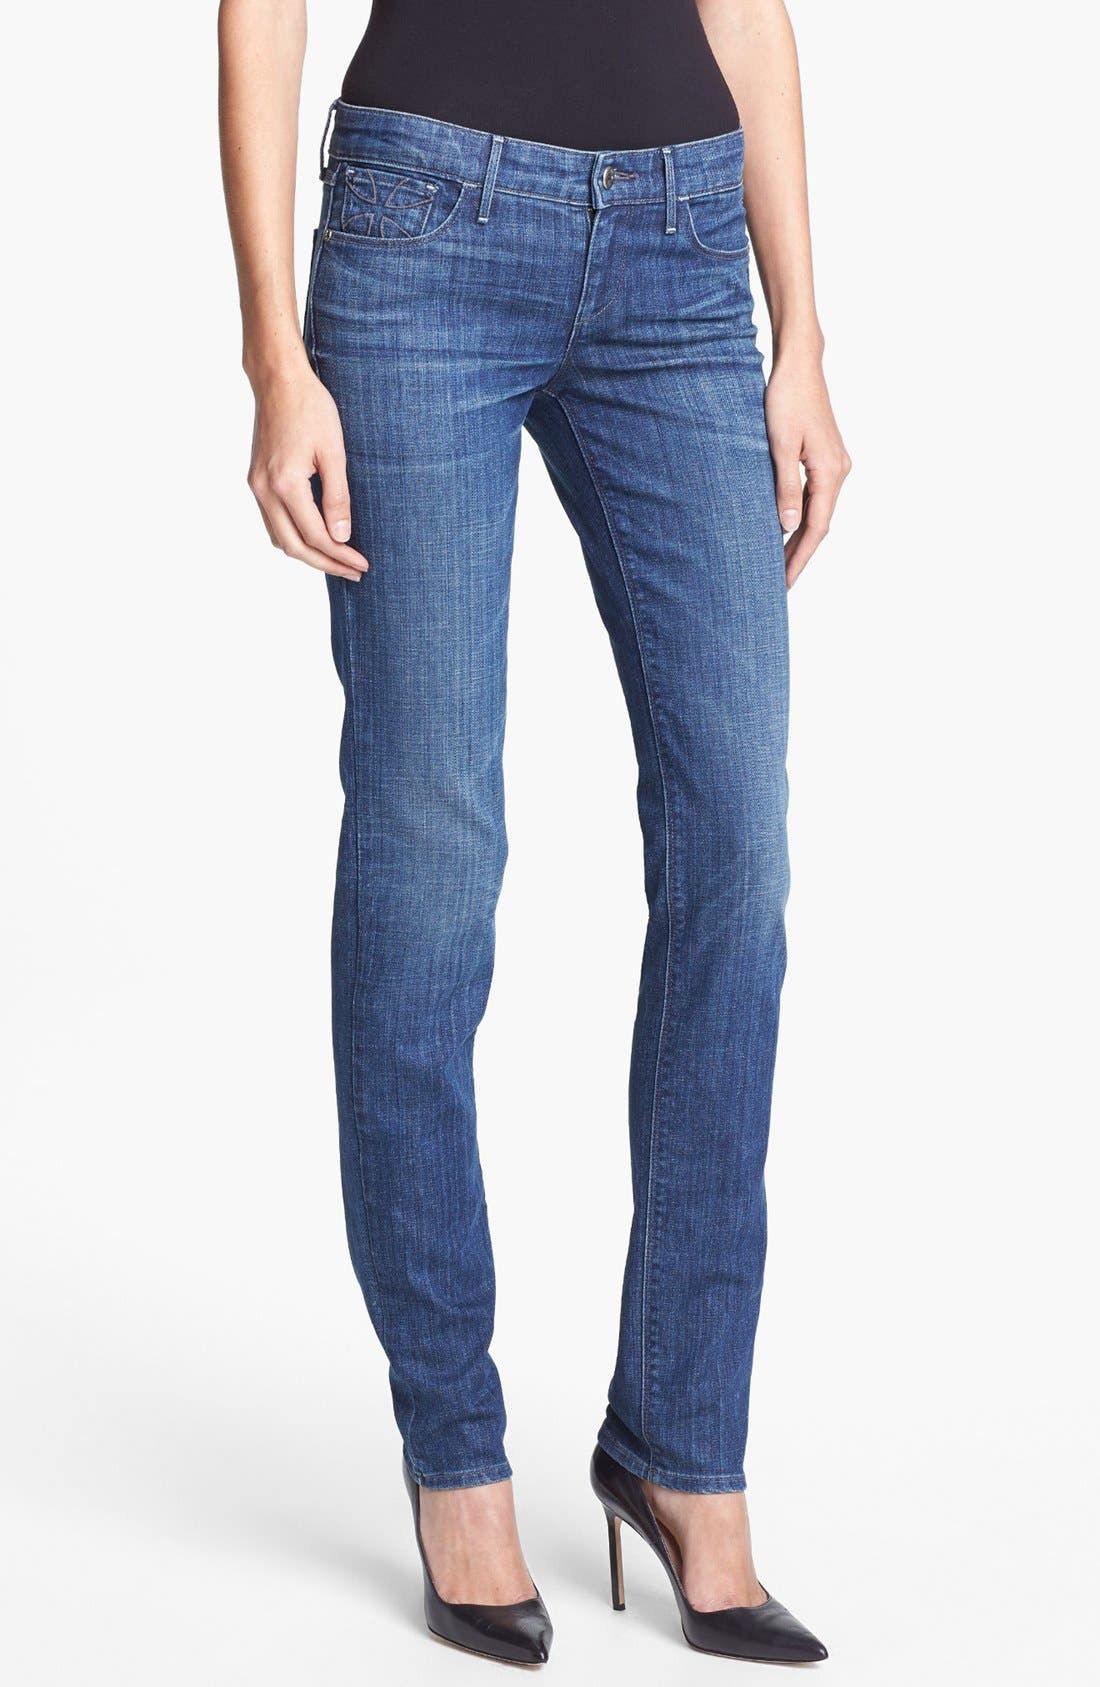 Alternate Image 1 Selected - Habitual 'Alice' Skinny Stretch Jeans